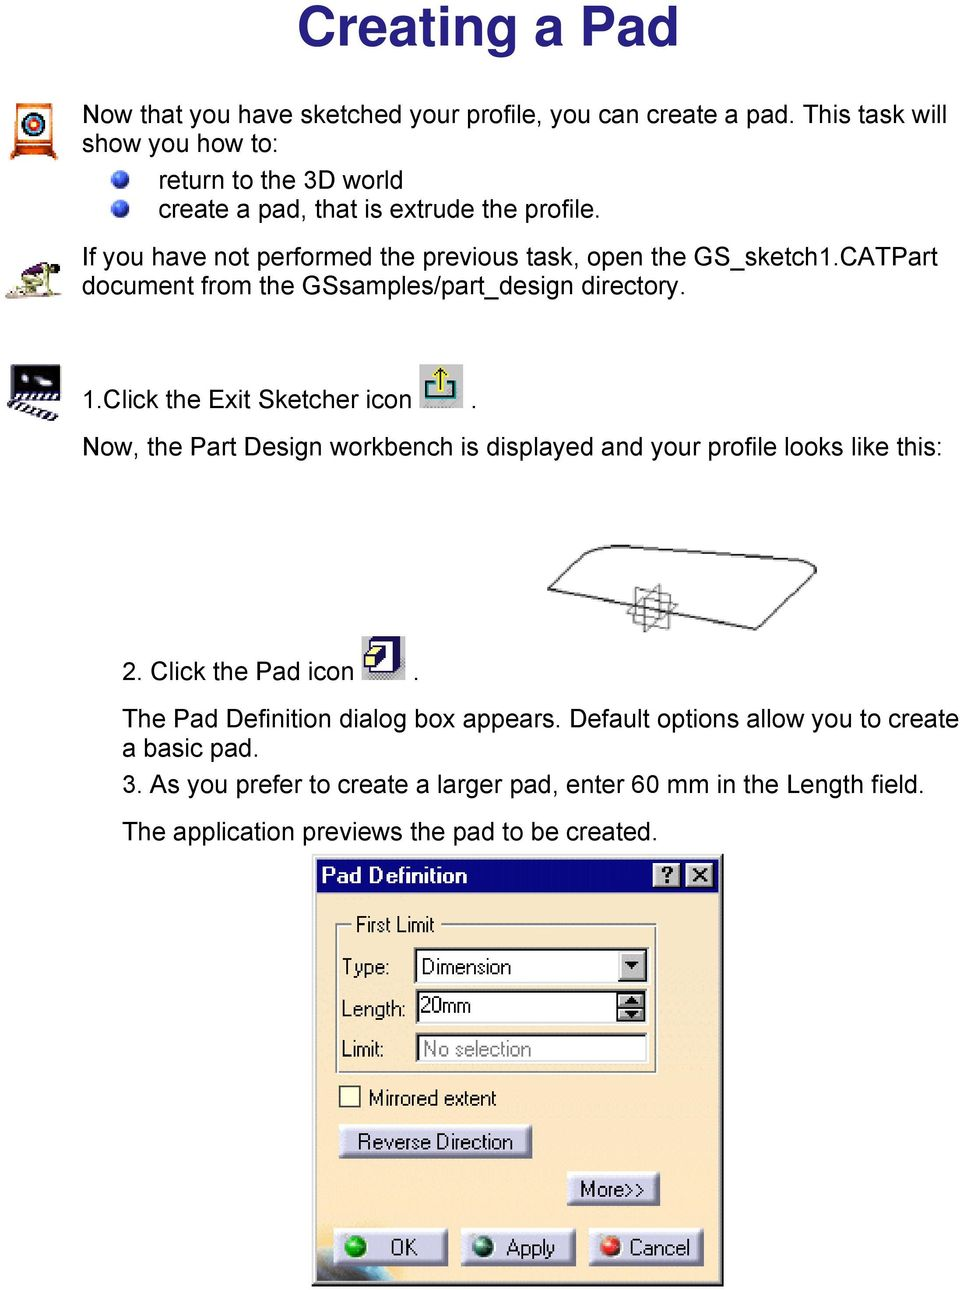 If you have not performed the previous task, open the GS_sketch1.CATPart document from the GSsamples/part_design directory. 1.Click the Exit Sketcher icon.